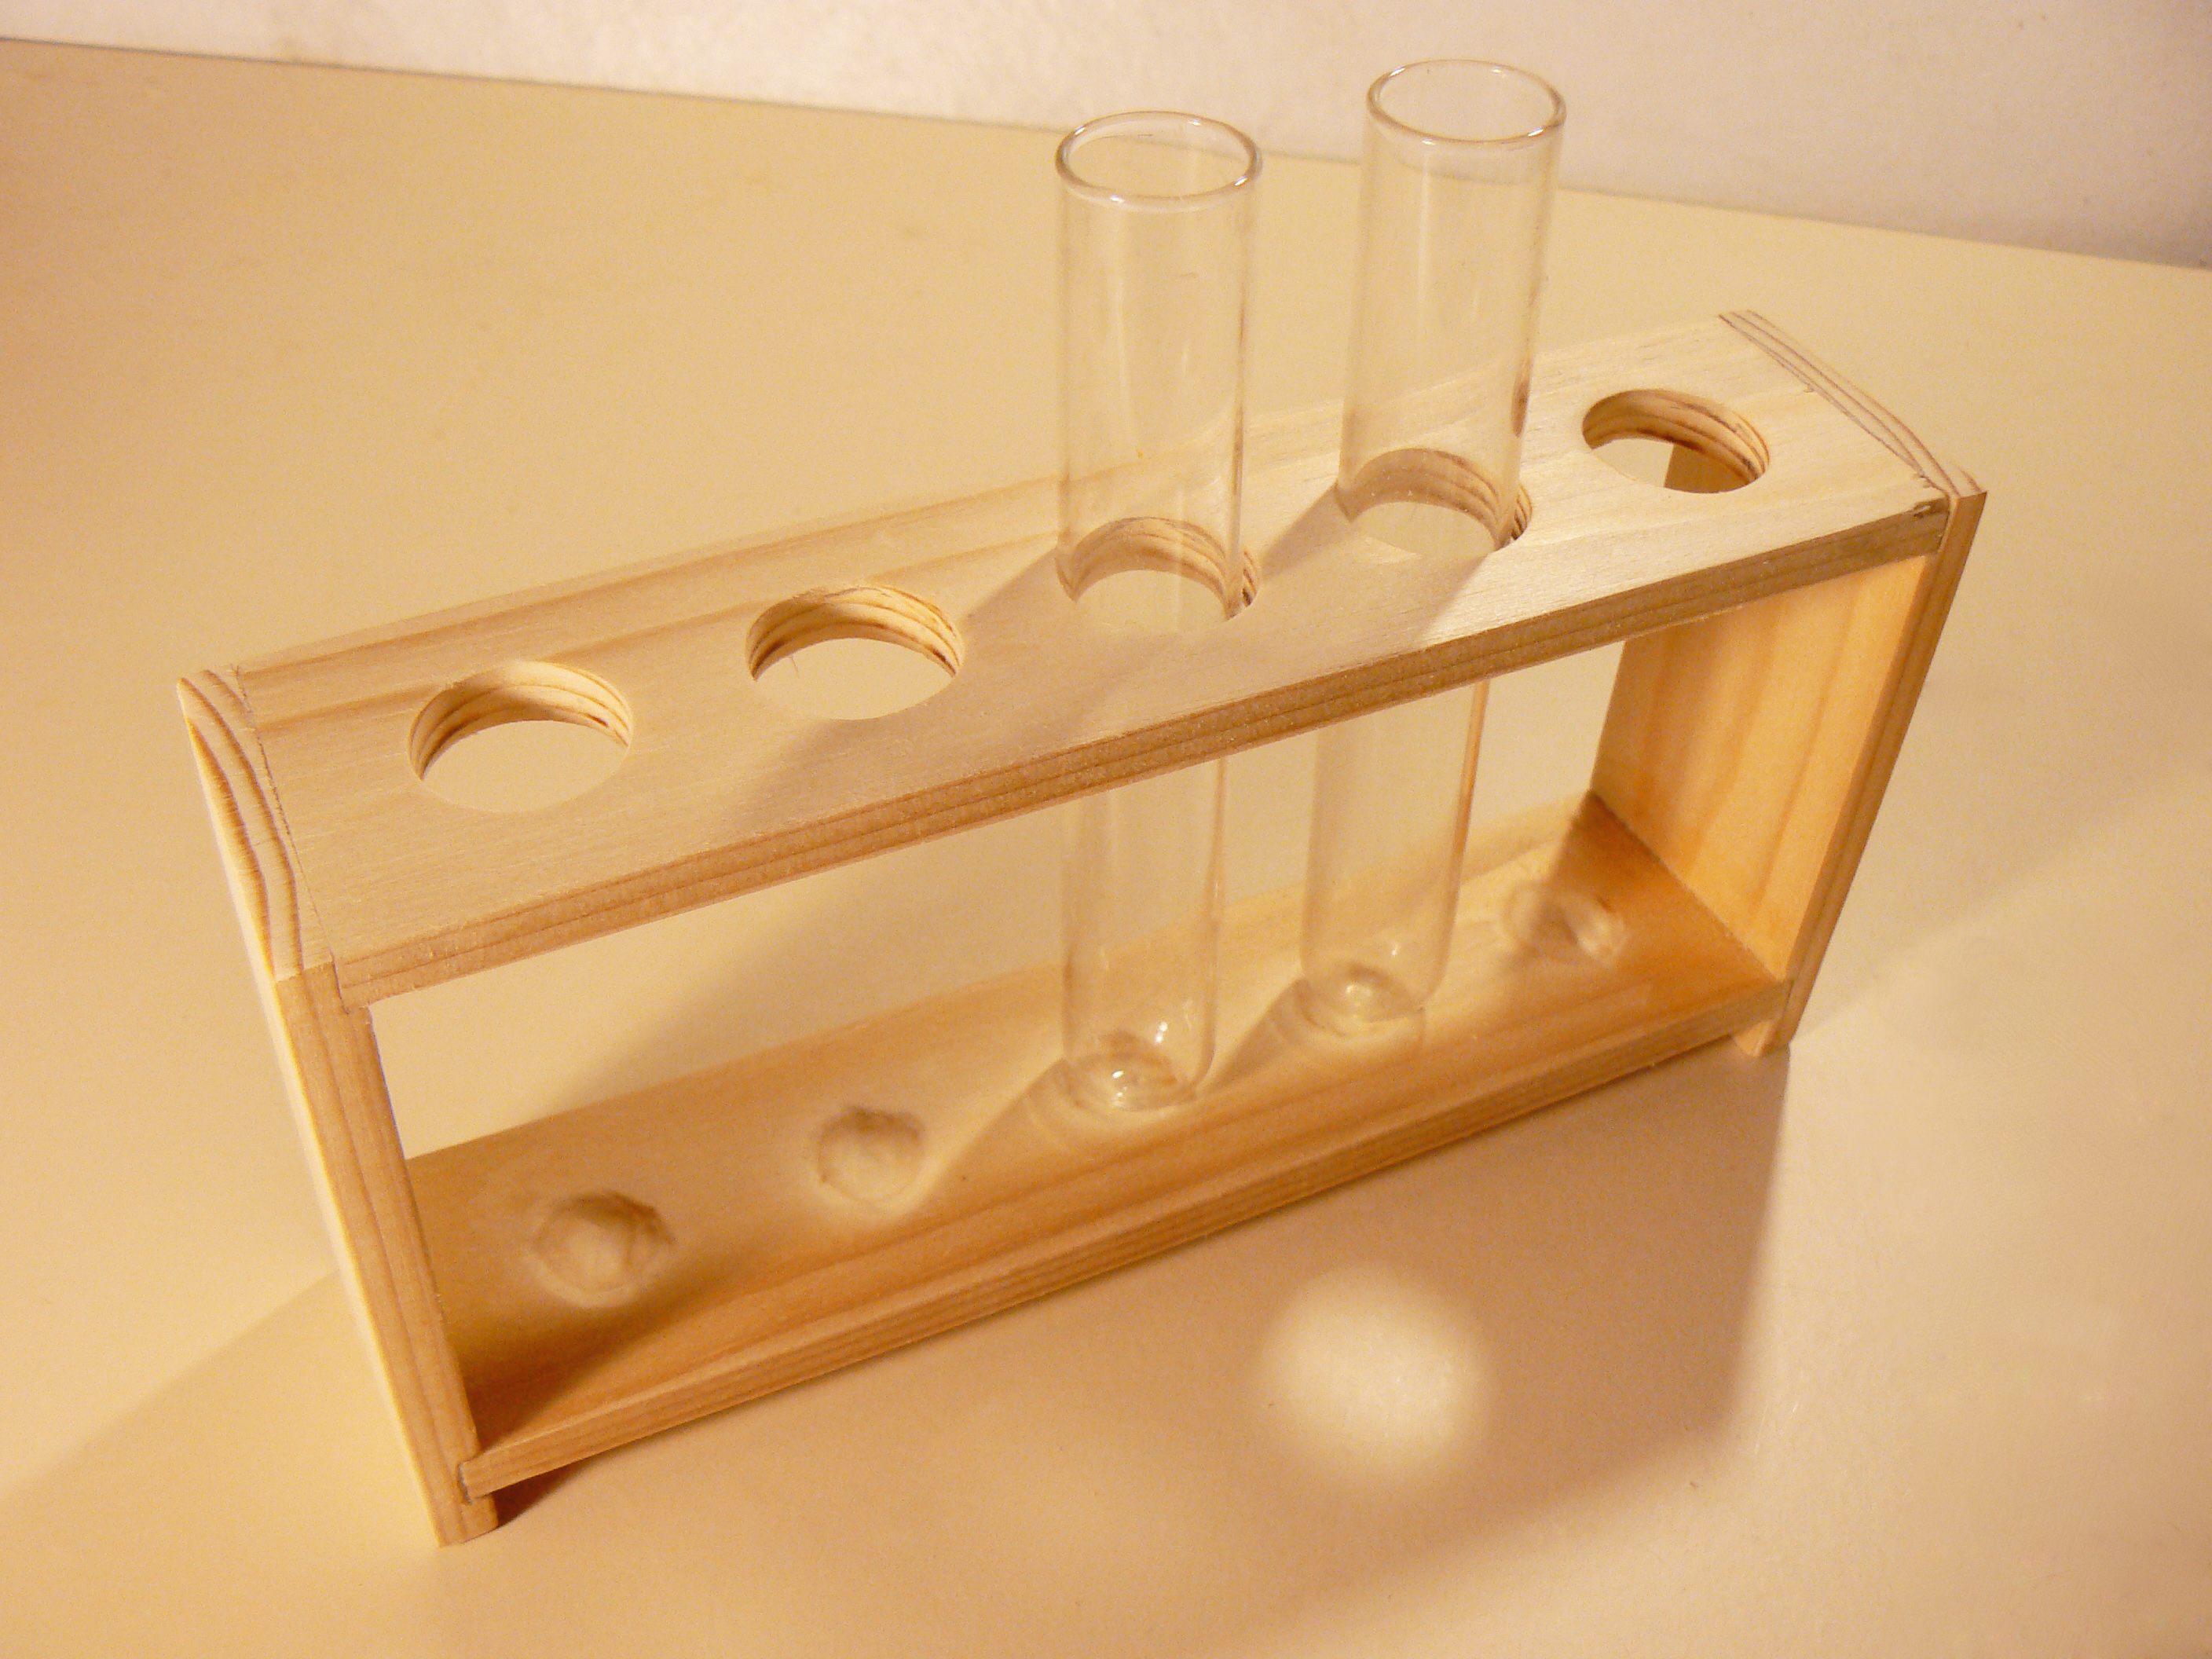 Build A Test Tube Stand